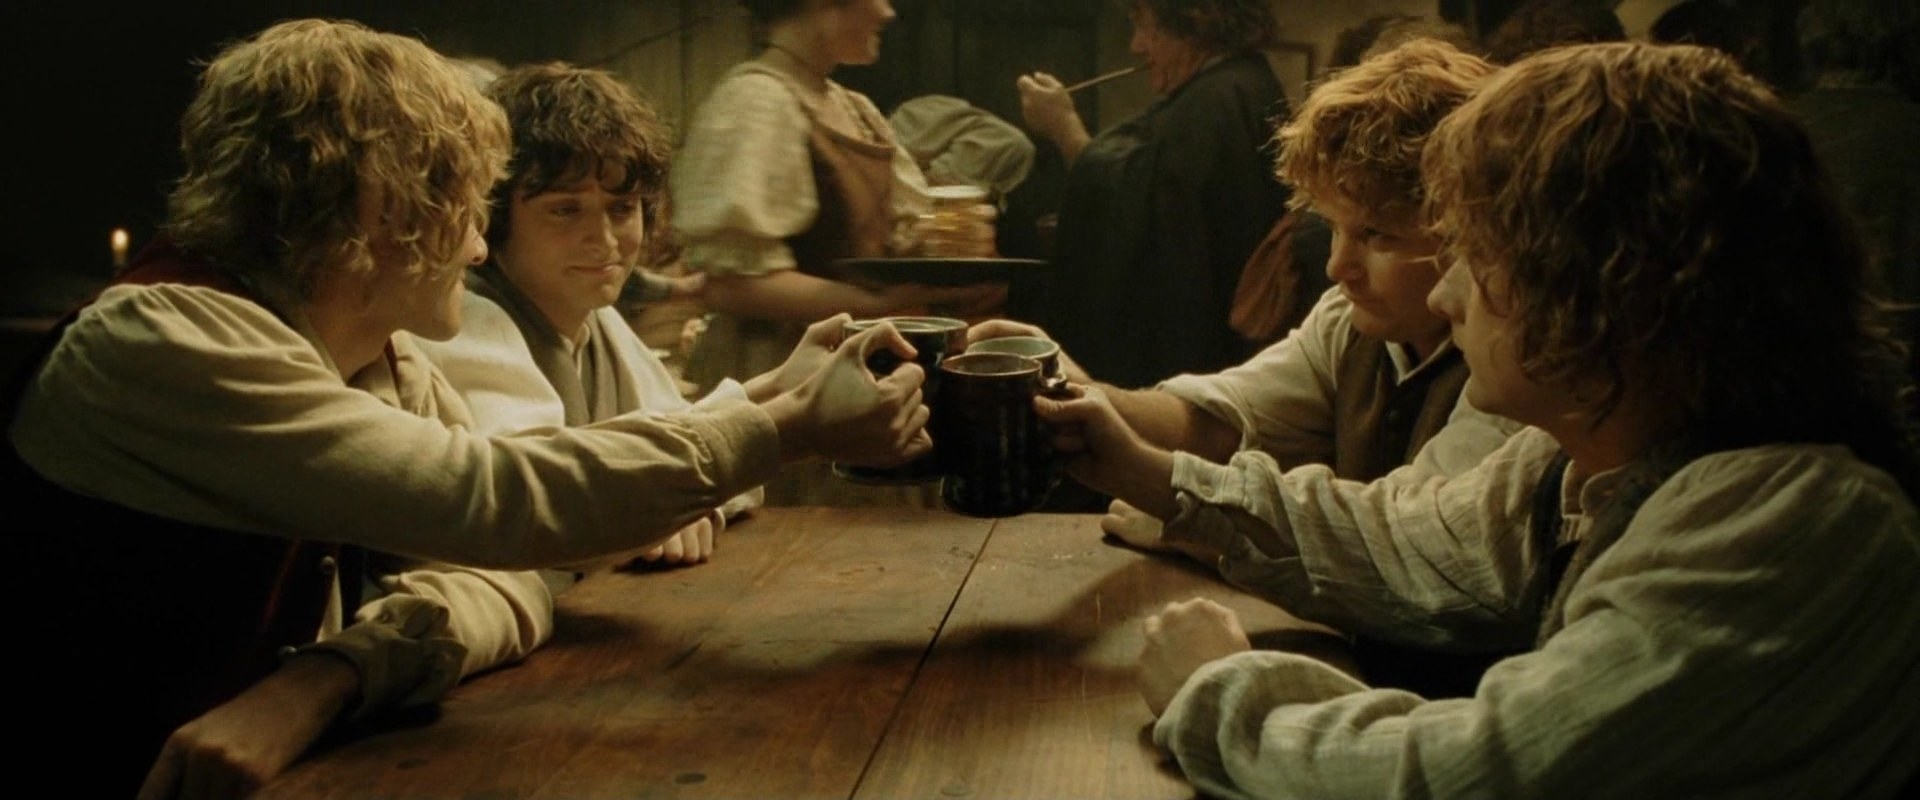 Frodo, Sam, and others cheers at the pub